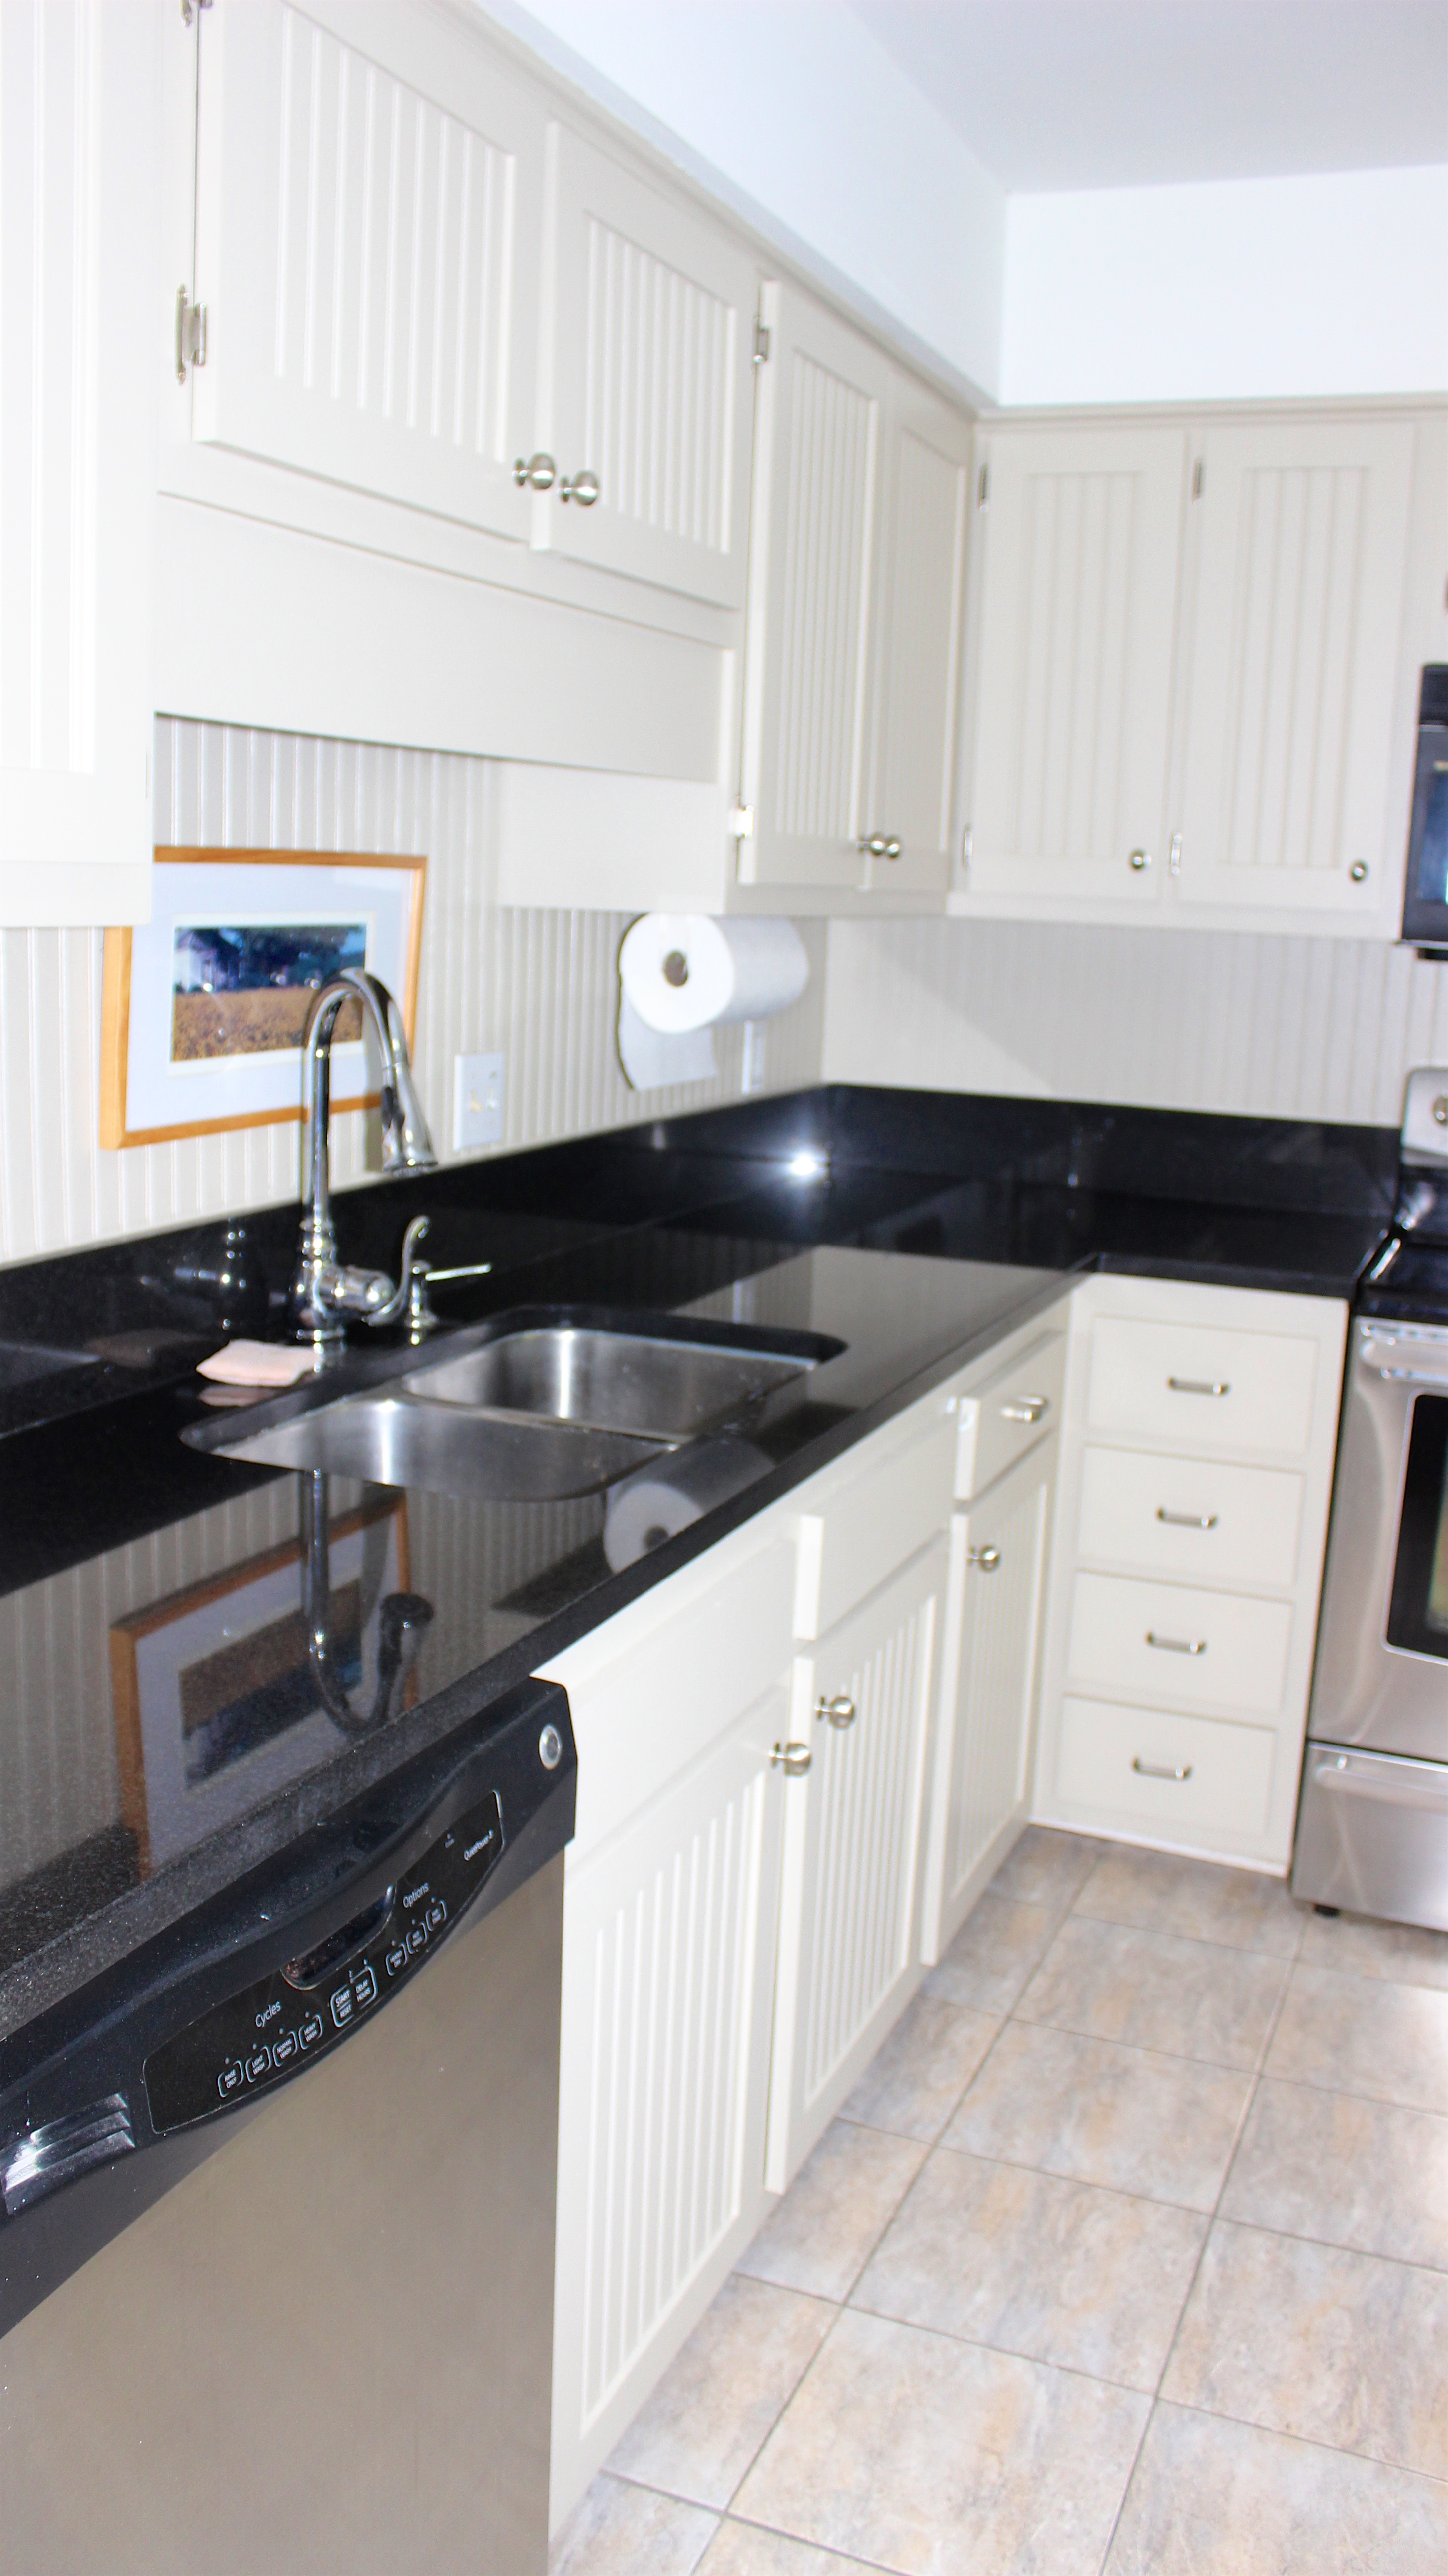 Stainless steel appliances and tile flooring are other features.